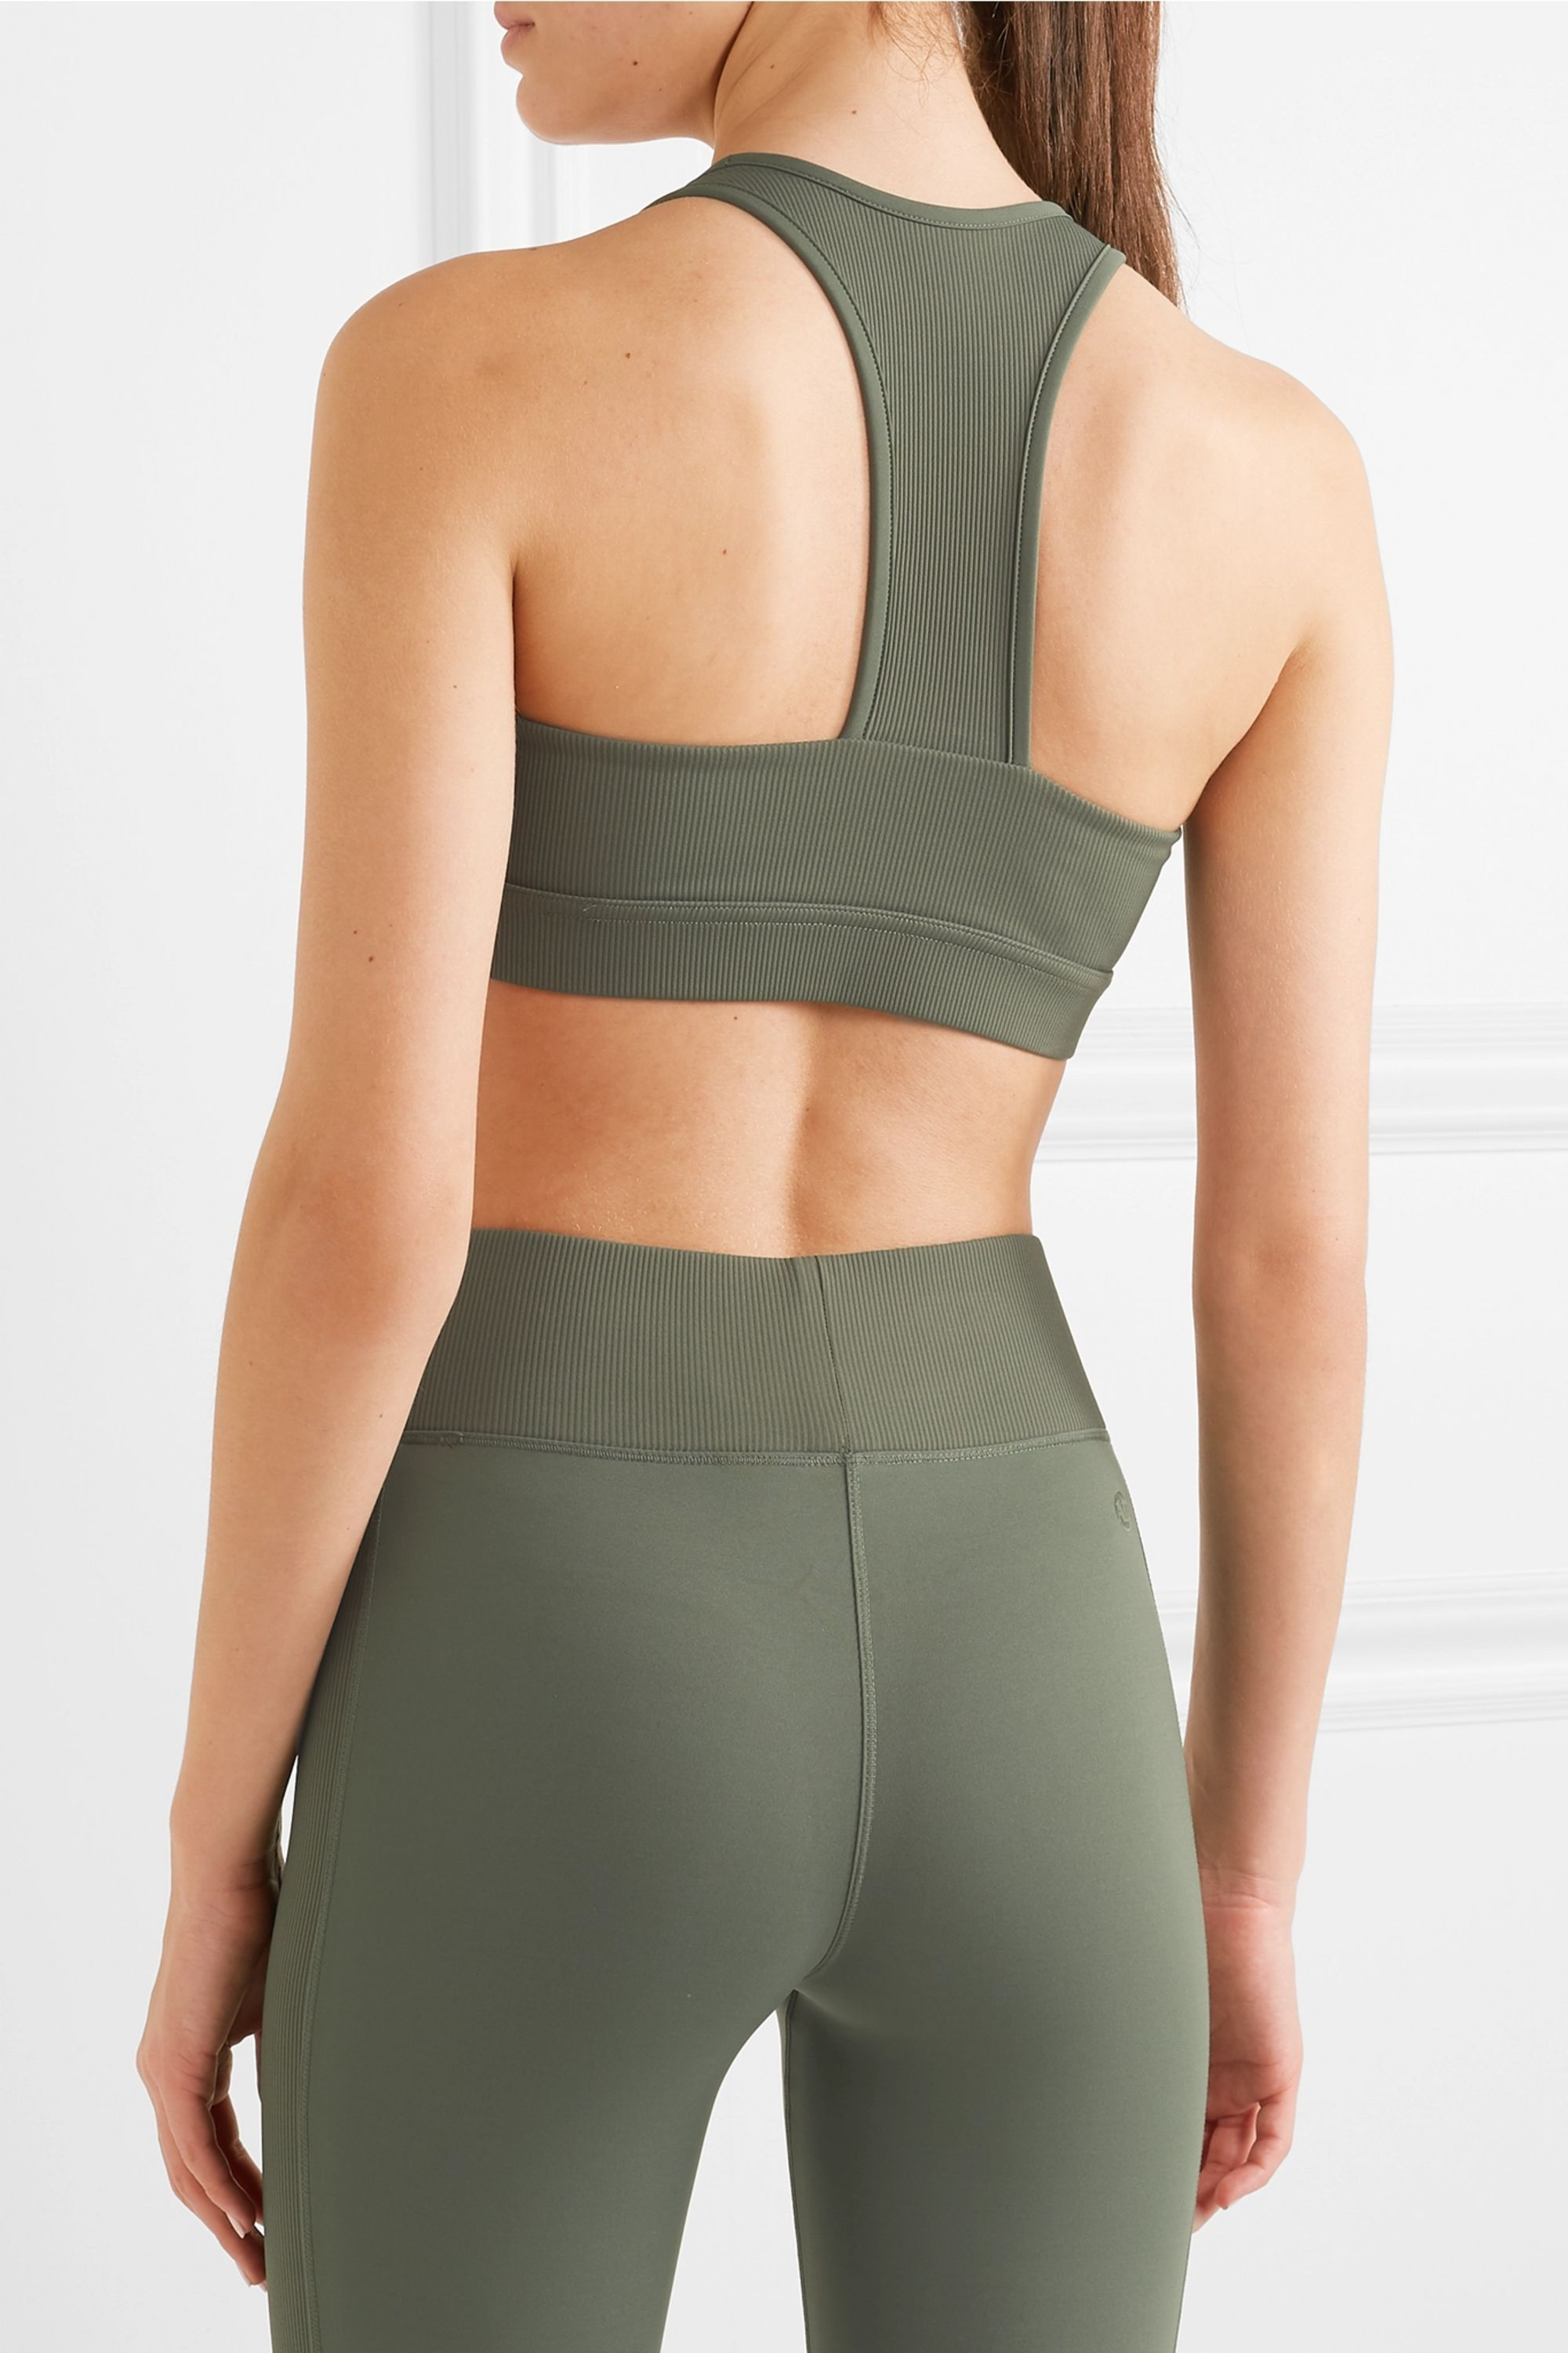 All Access Front Row ribbed stretch sports bra